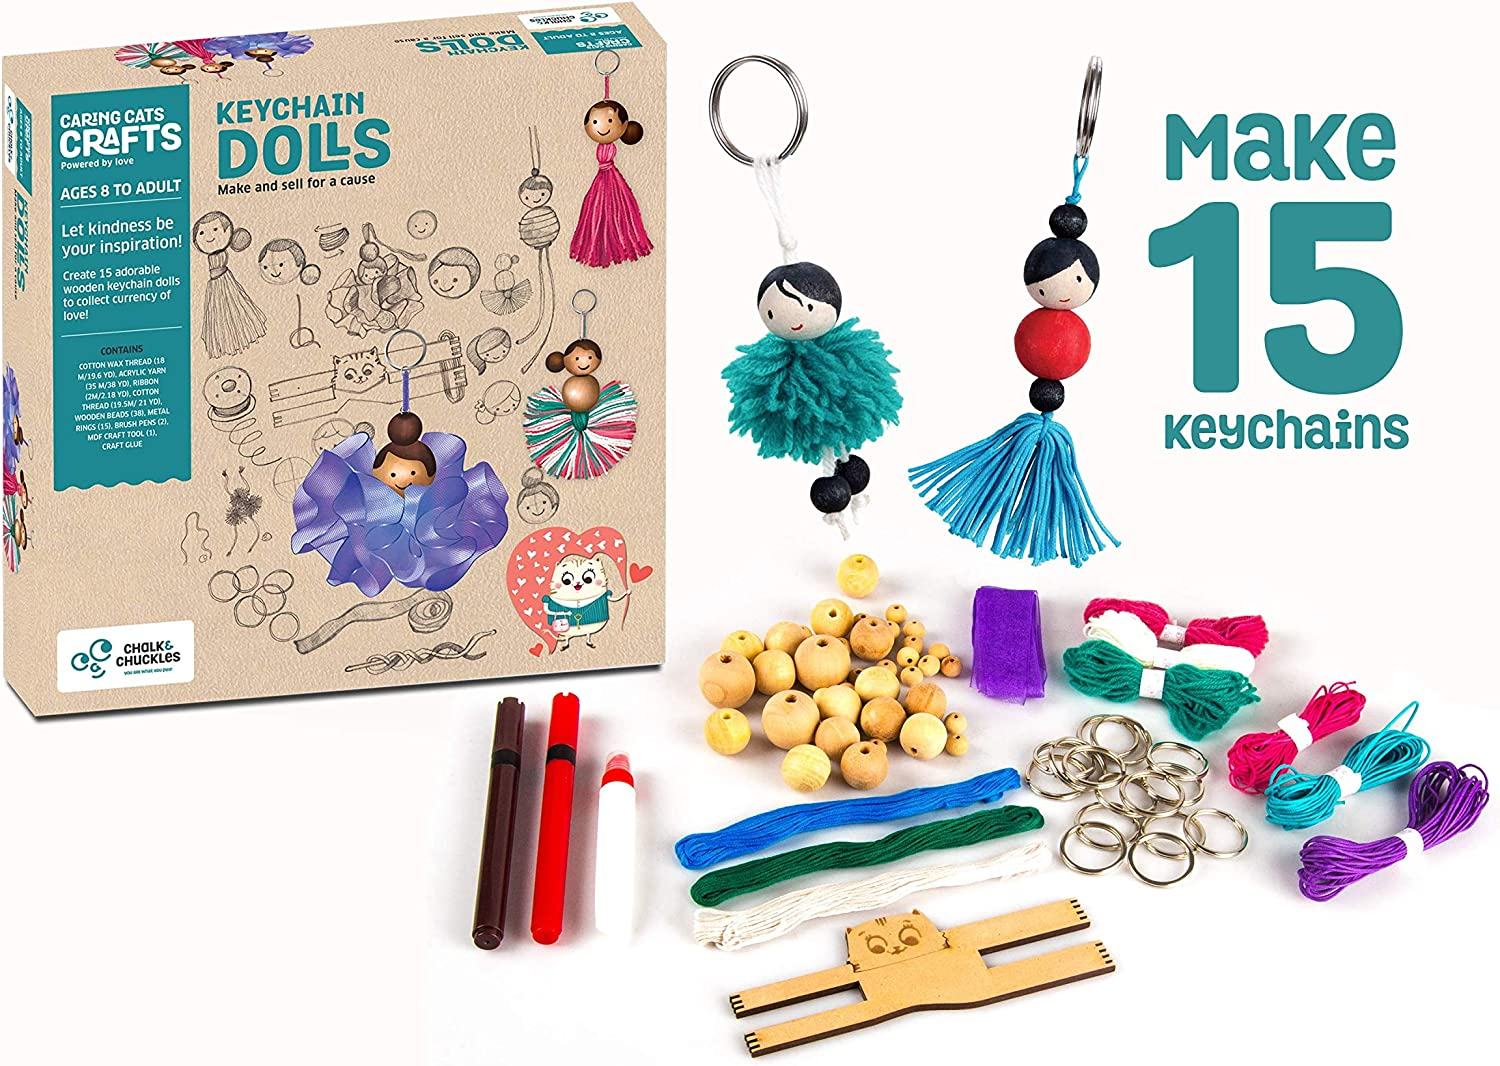 Make Yourself Activity Kit for Adults and Ages 8 Years+ Chalk and Chuckles Art and Craft Keychain Dolls Unique DIY Set with Ribbon Beads and Supplies